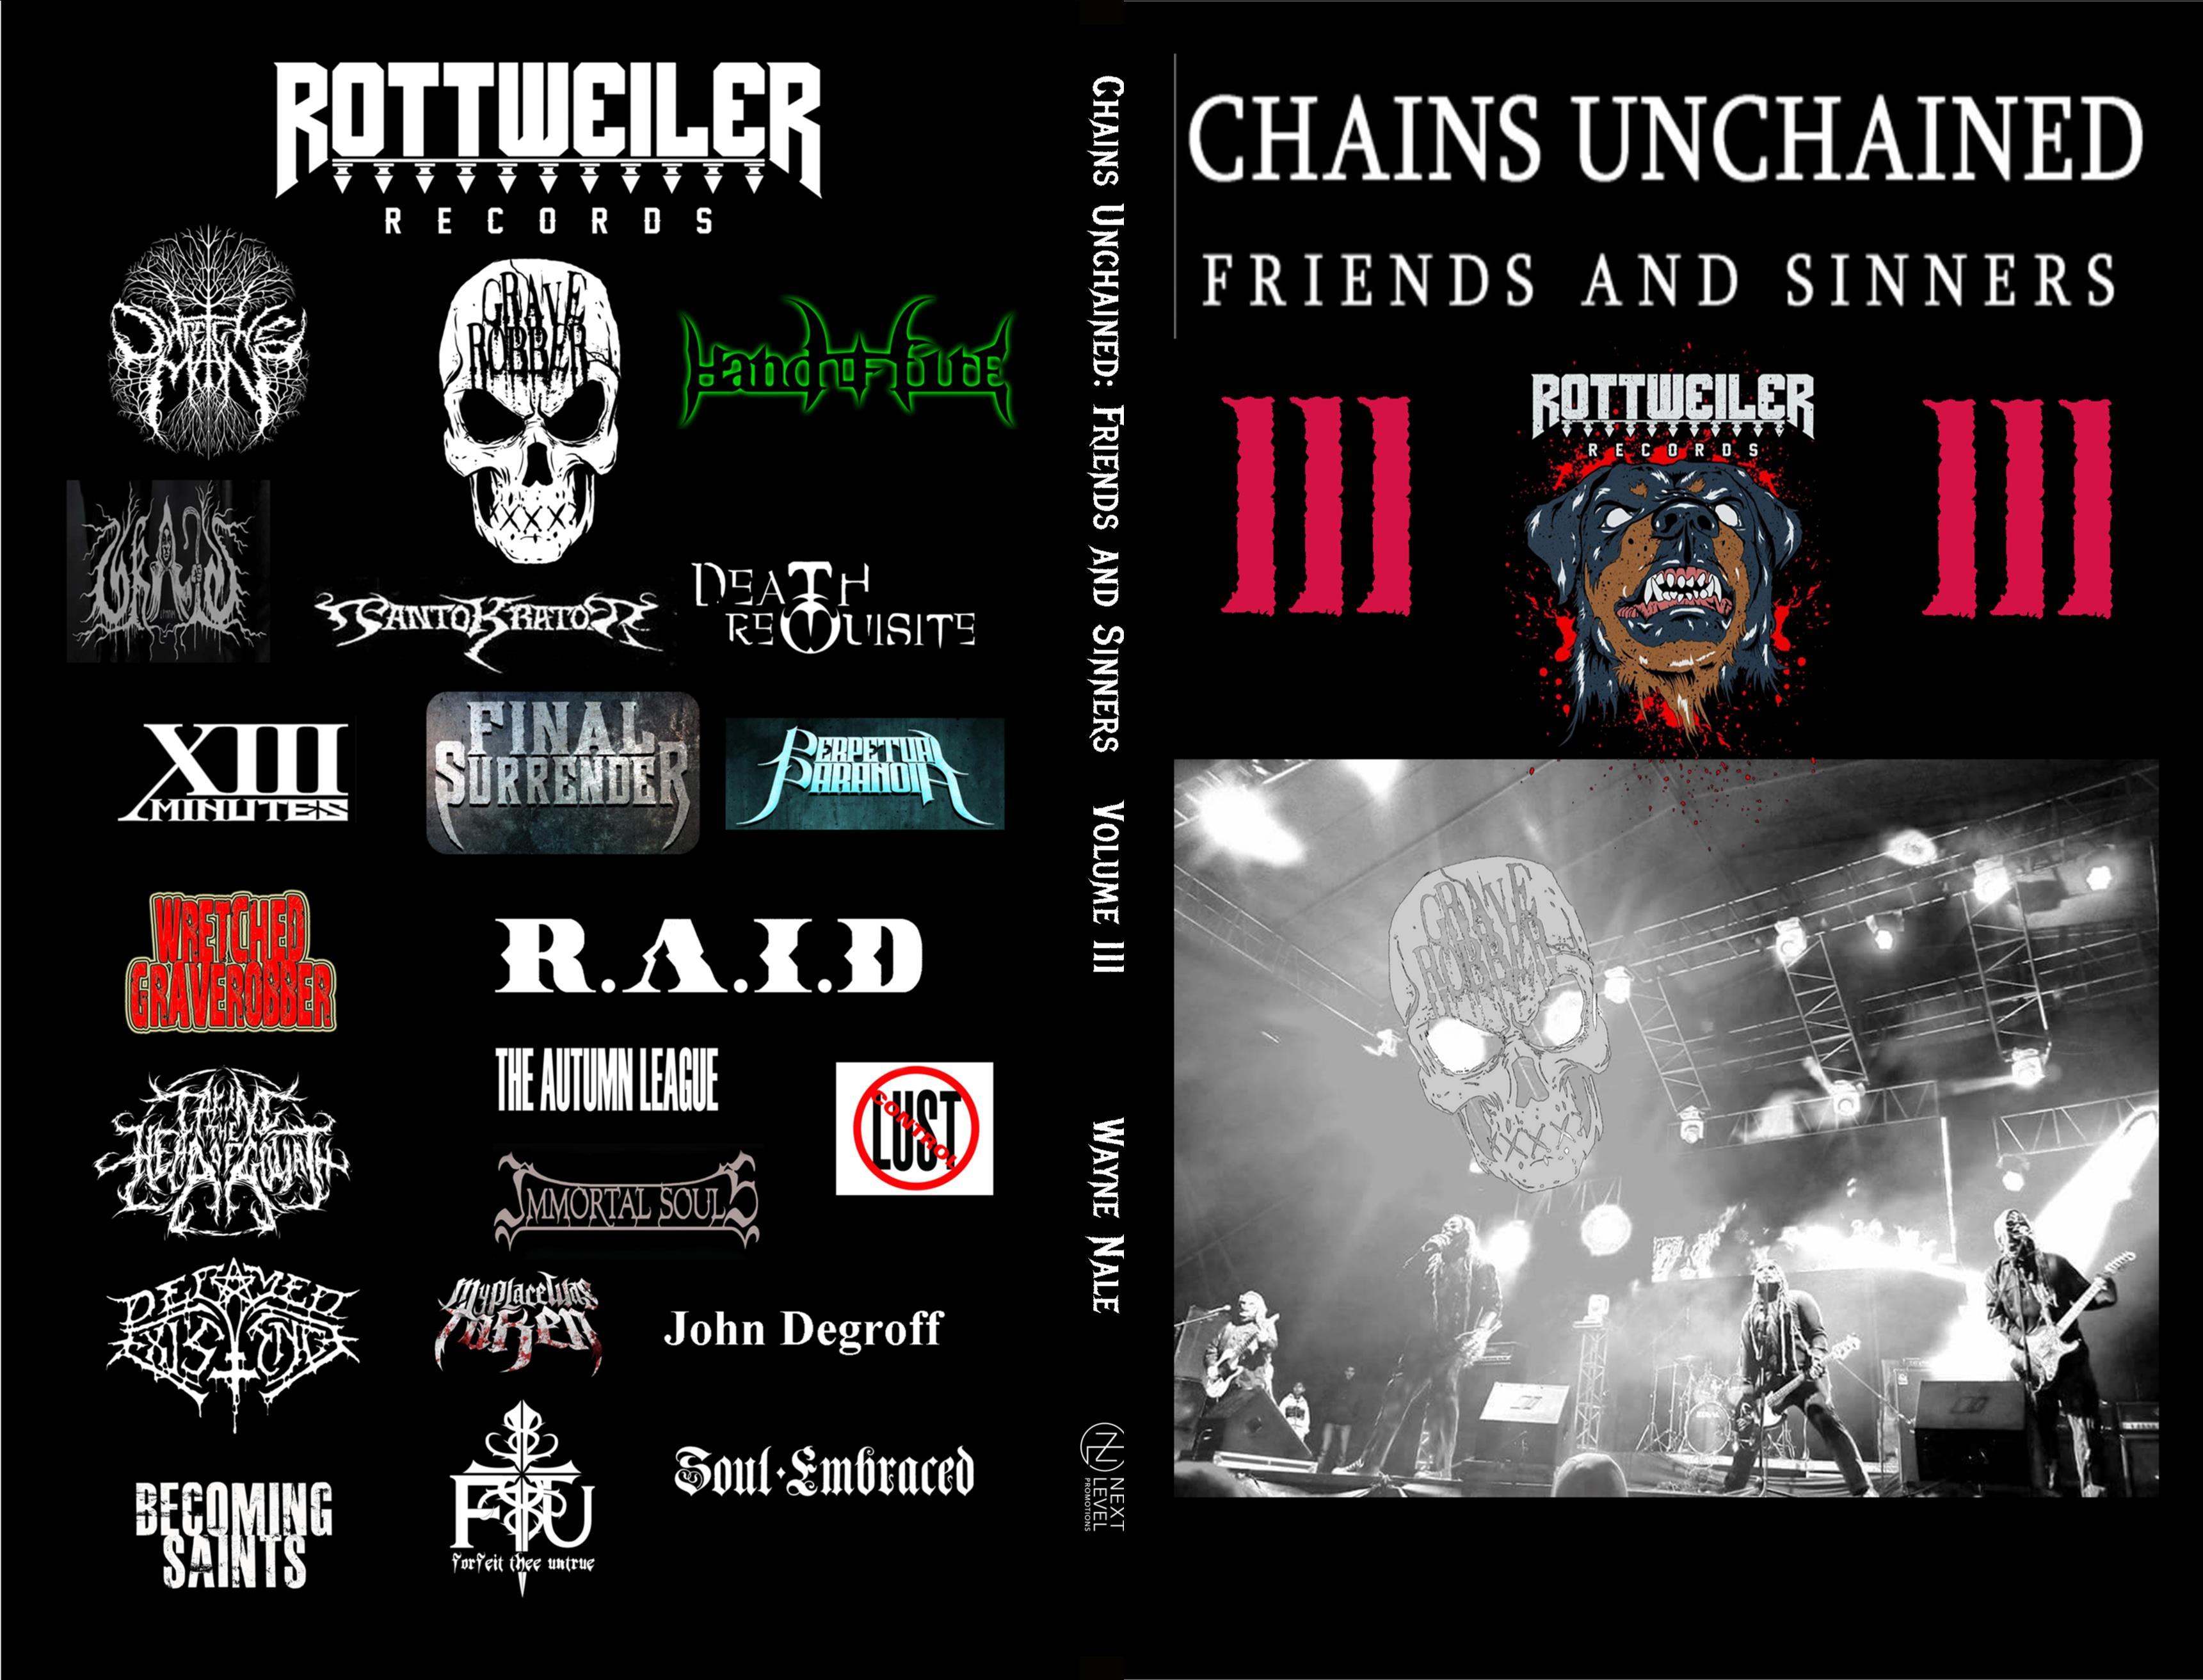 Chains Unchained: Friends and Sinners Volume III cover image